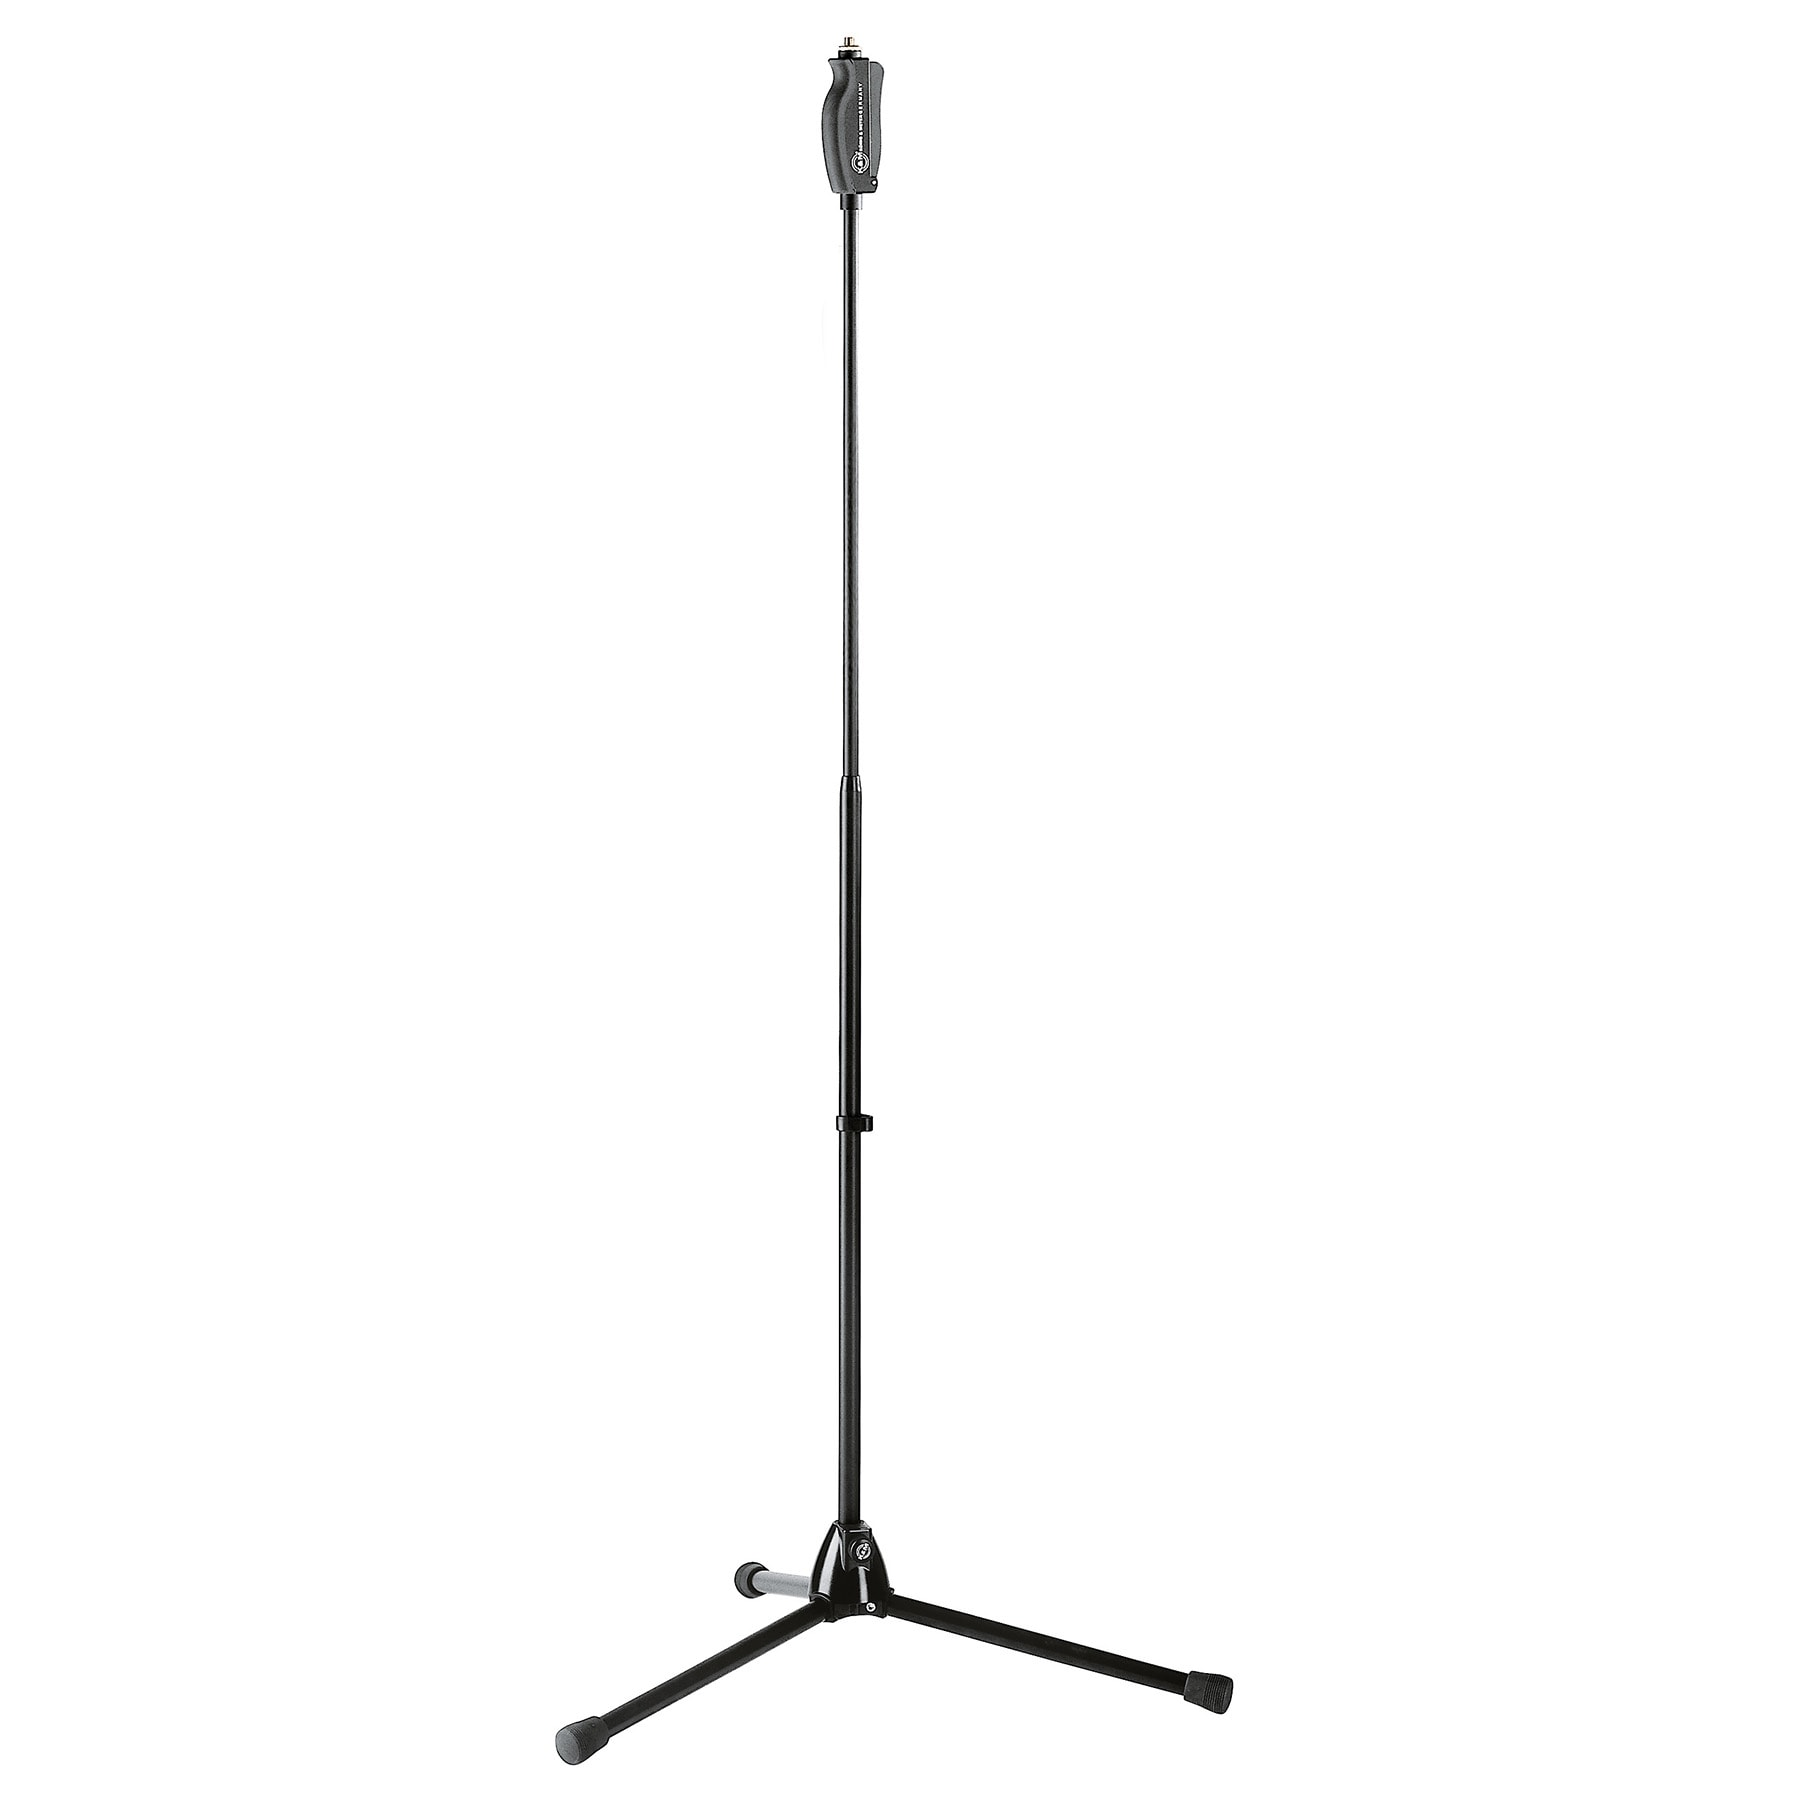 KM25680 - One hand microphone stand